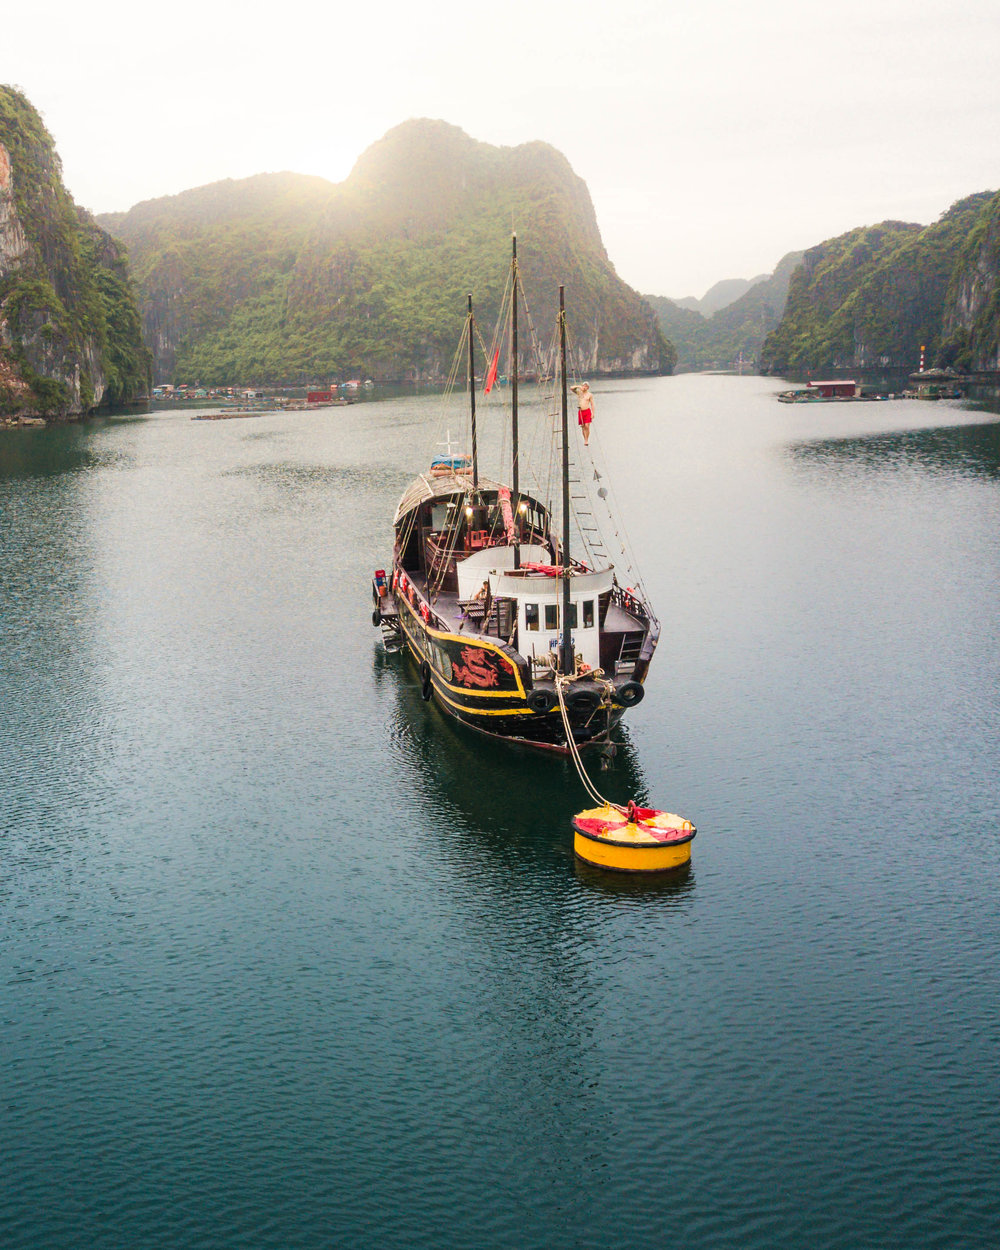 We have teamed up with  Halong Bay Cruises  an amazing travel group based in Vietnam. They are currently offering 10-40% OFF their Halong Bay Cruises. Find out more by clicking the image or the blue links.  Enjoy Halong Bay!